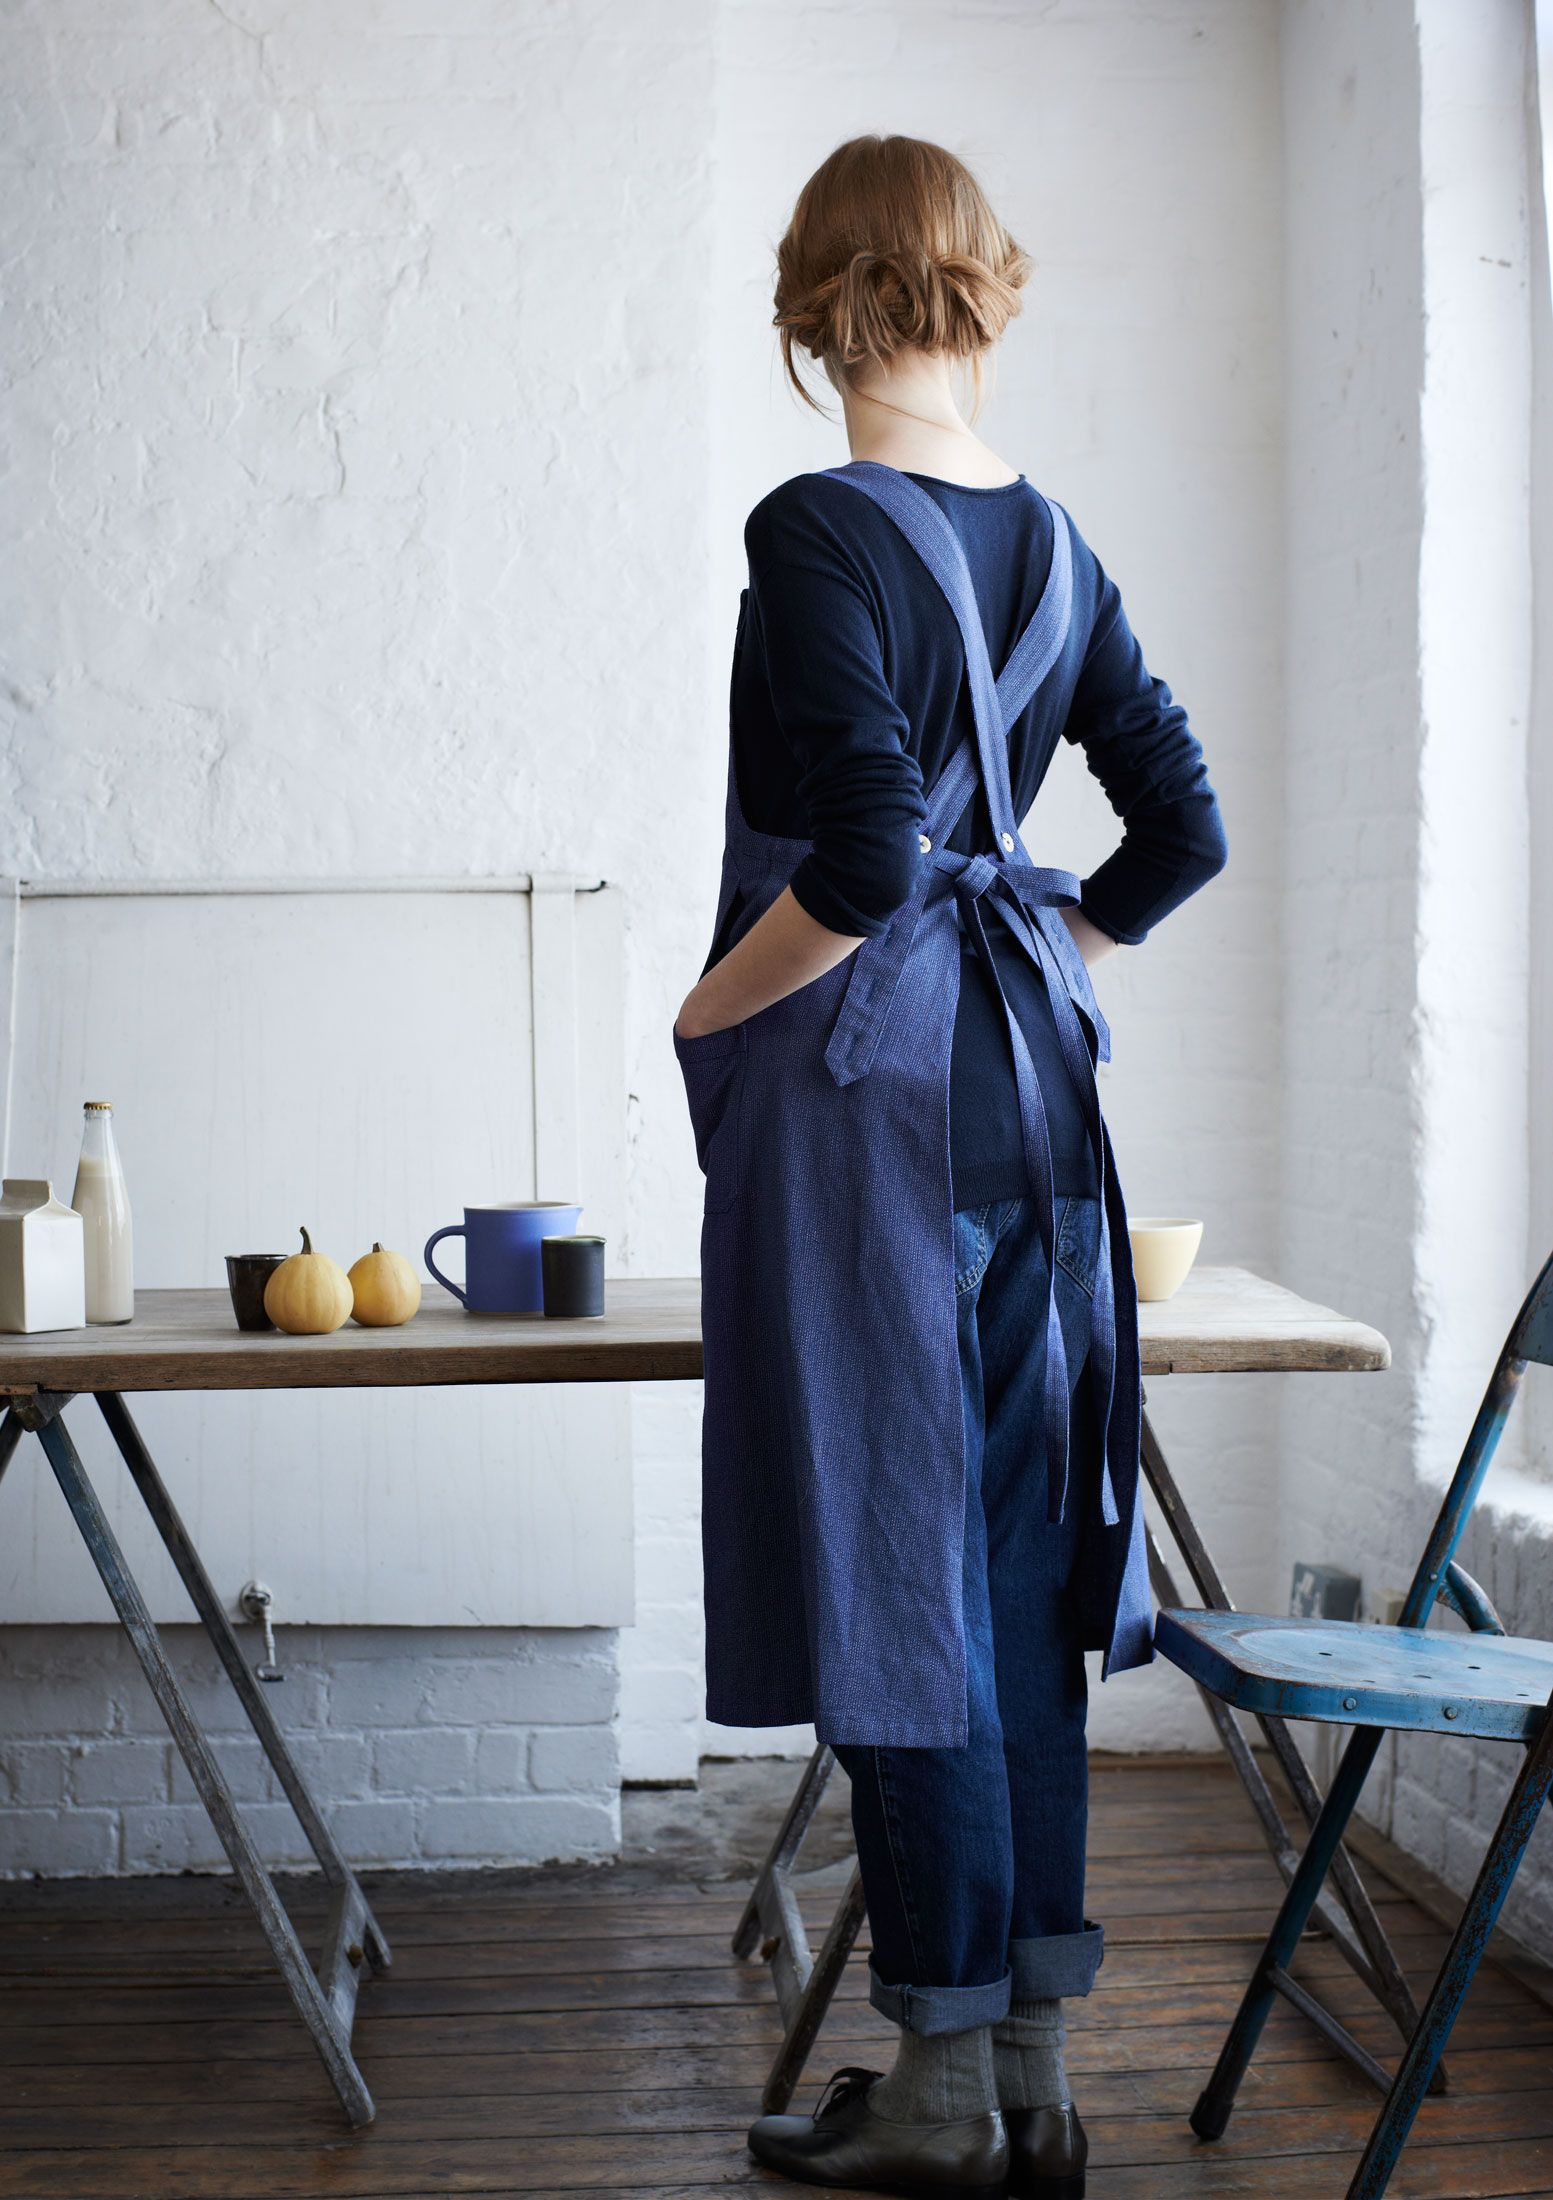 Denim Aprons For Work Uniform Over Simple Jeans And Ts,